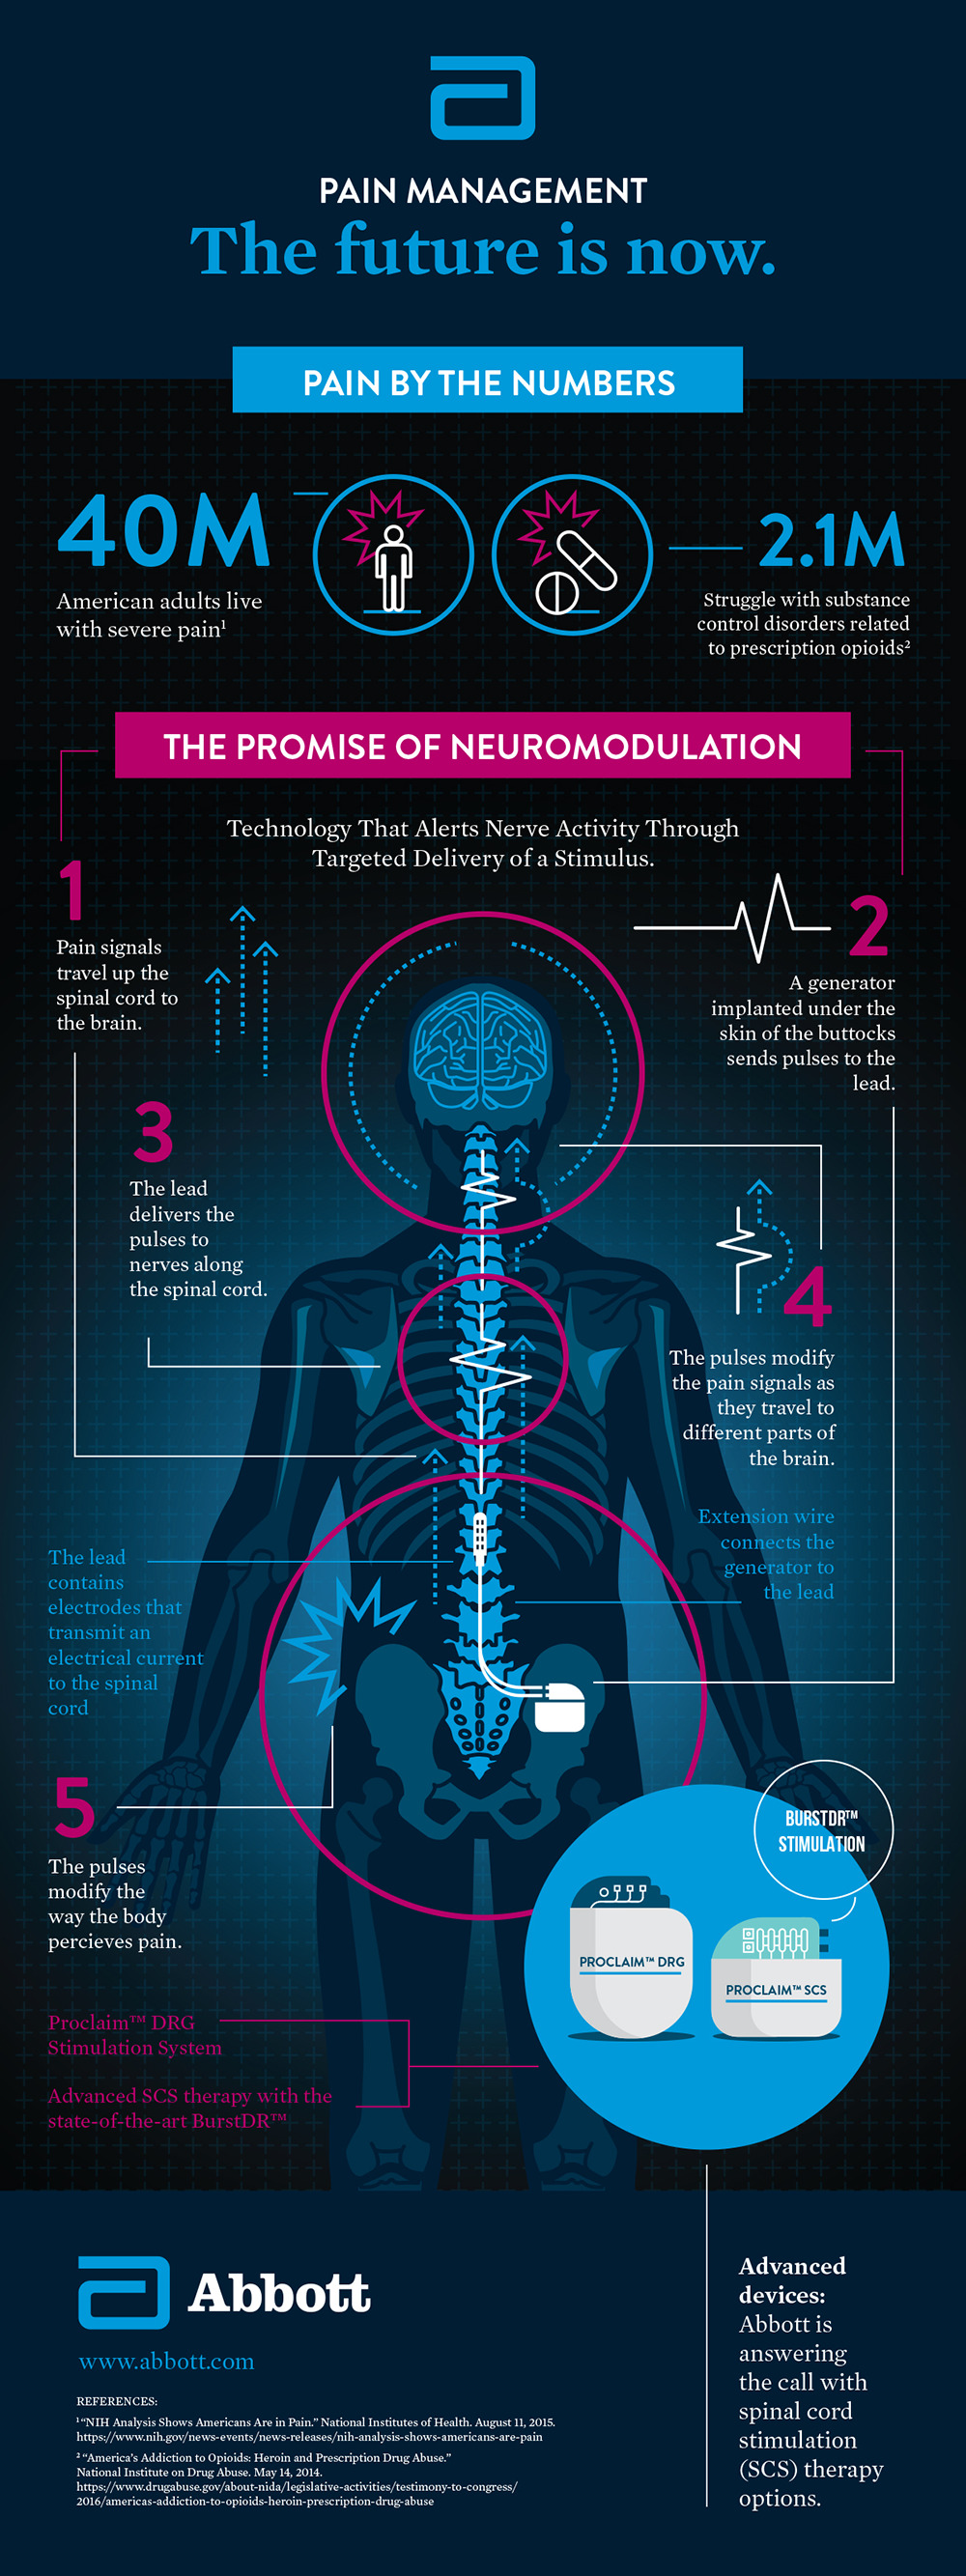 Abbott_Pain-Management-Infographic